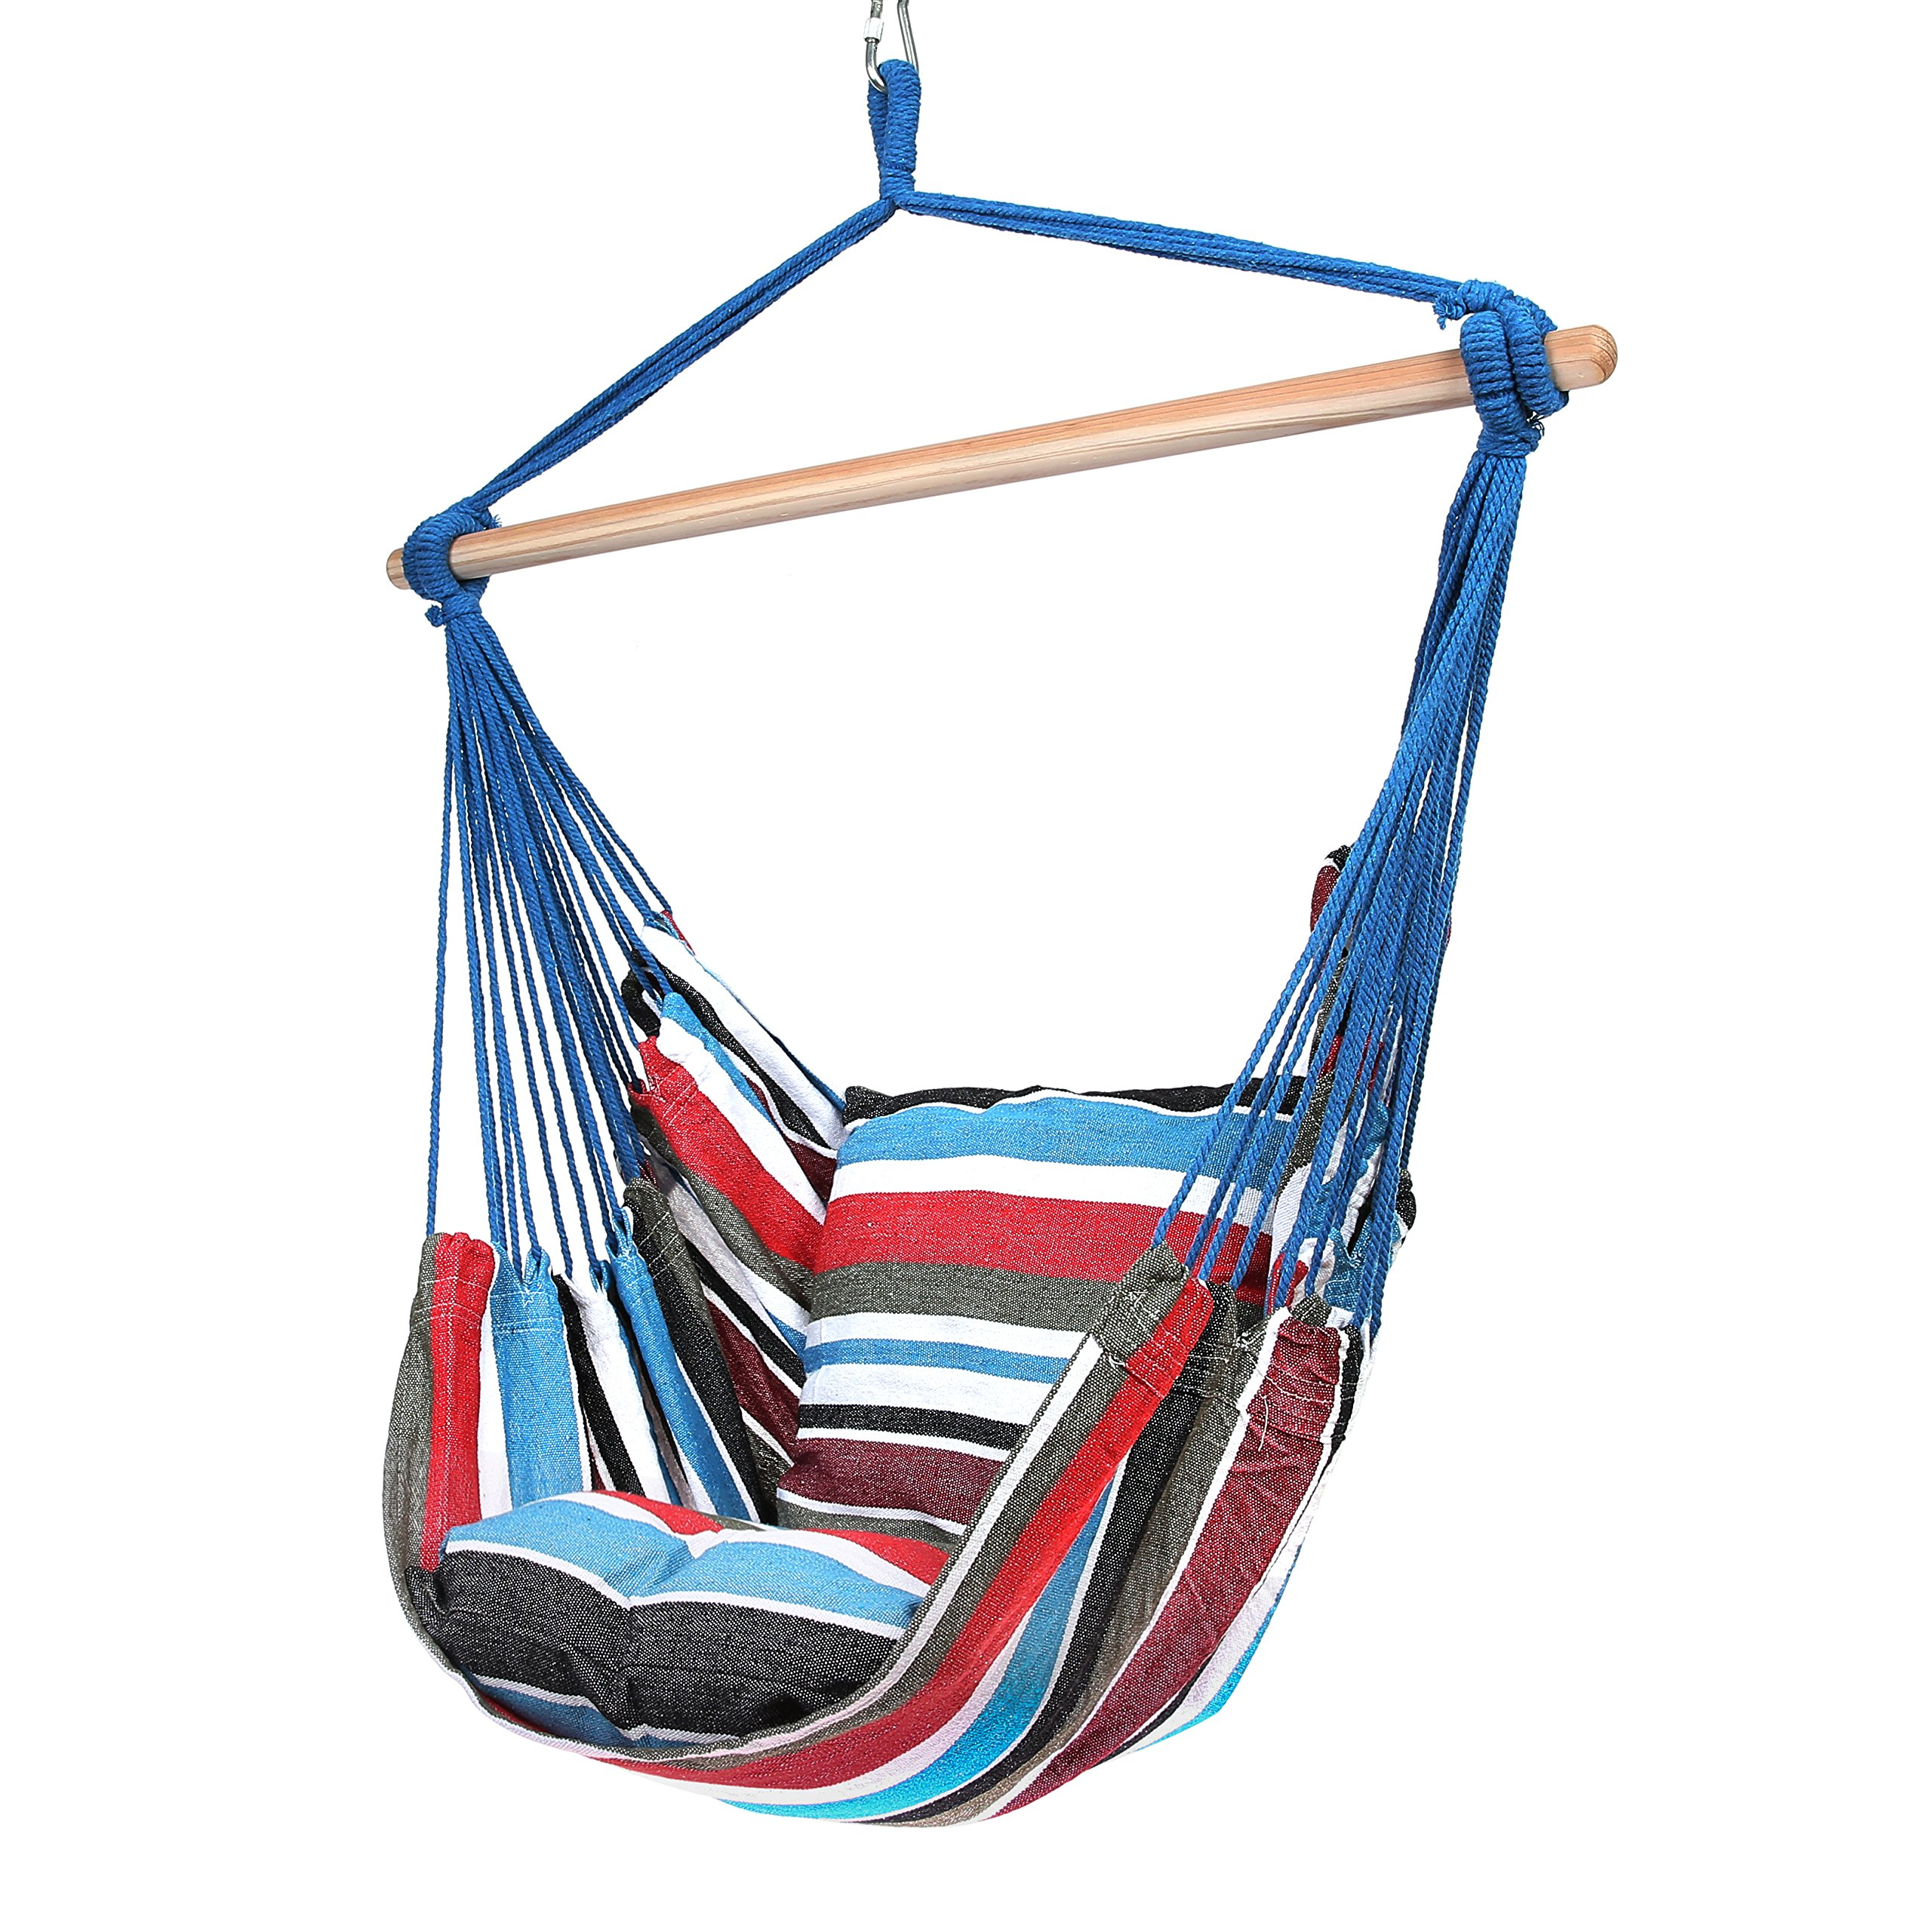 Blissun Hanging Hammock Chair, Hanging Swing Chair with Two Cushions, 34 Inch Wide Seat (Cool Breeze) by Blissun (Image #2)